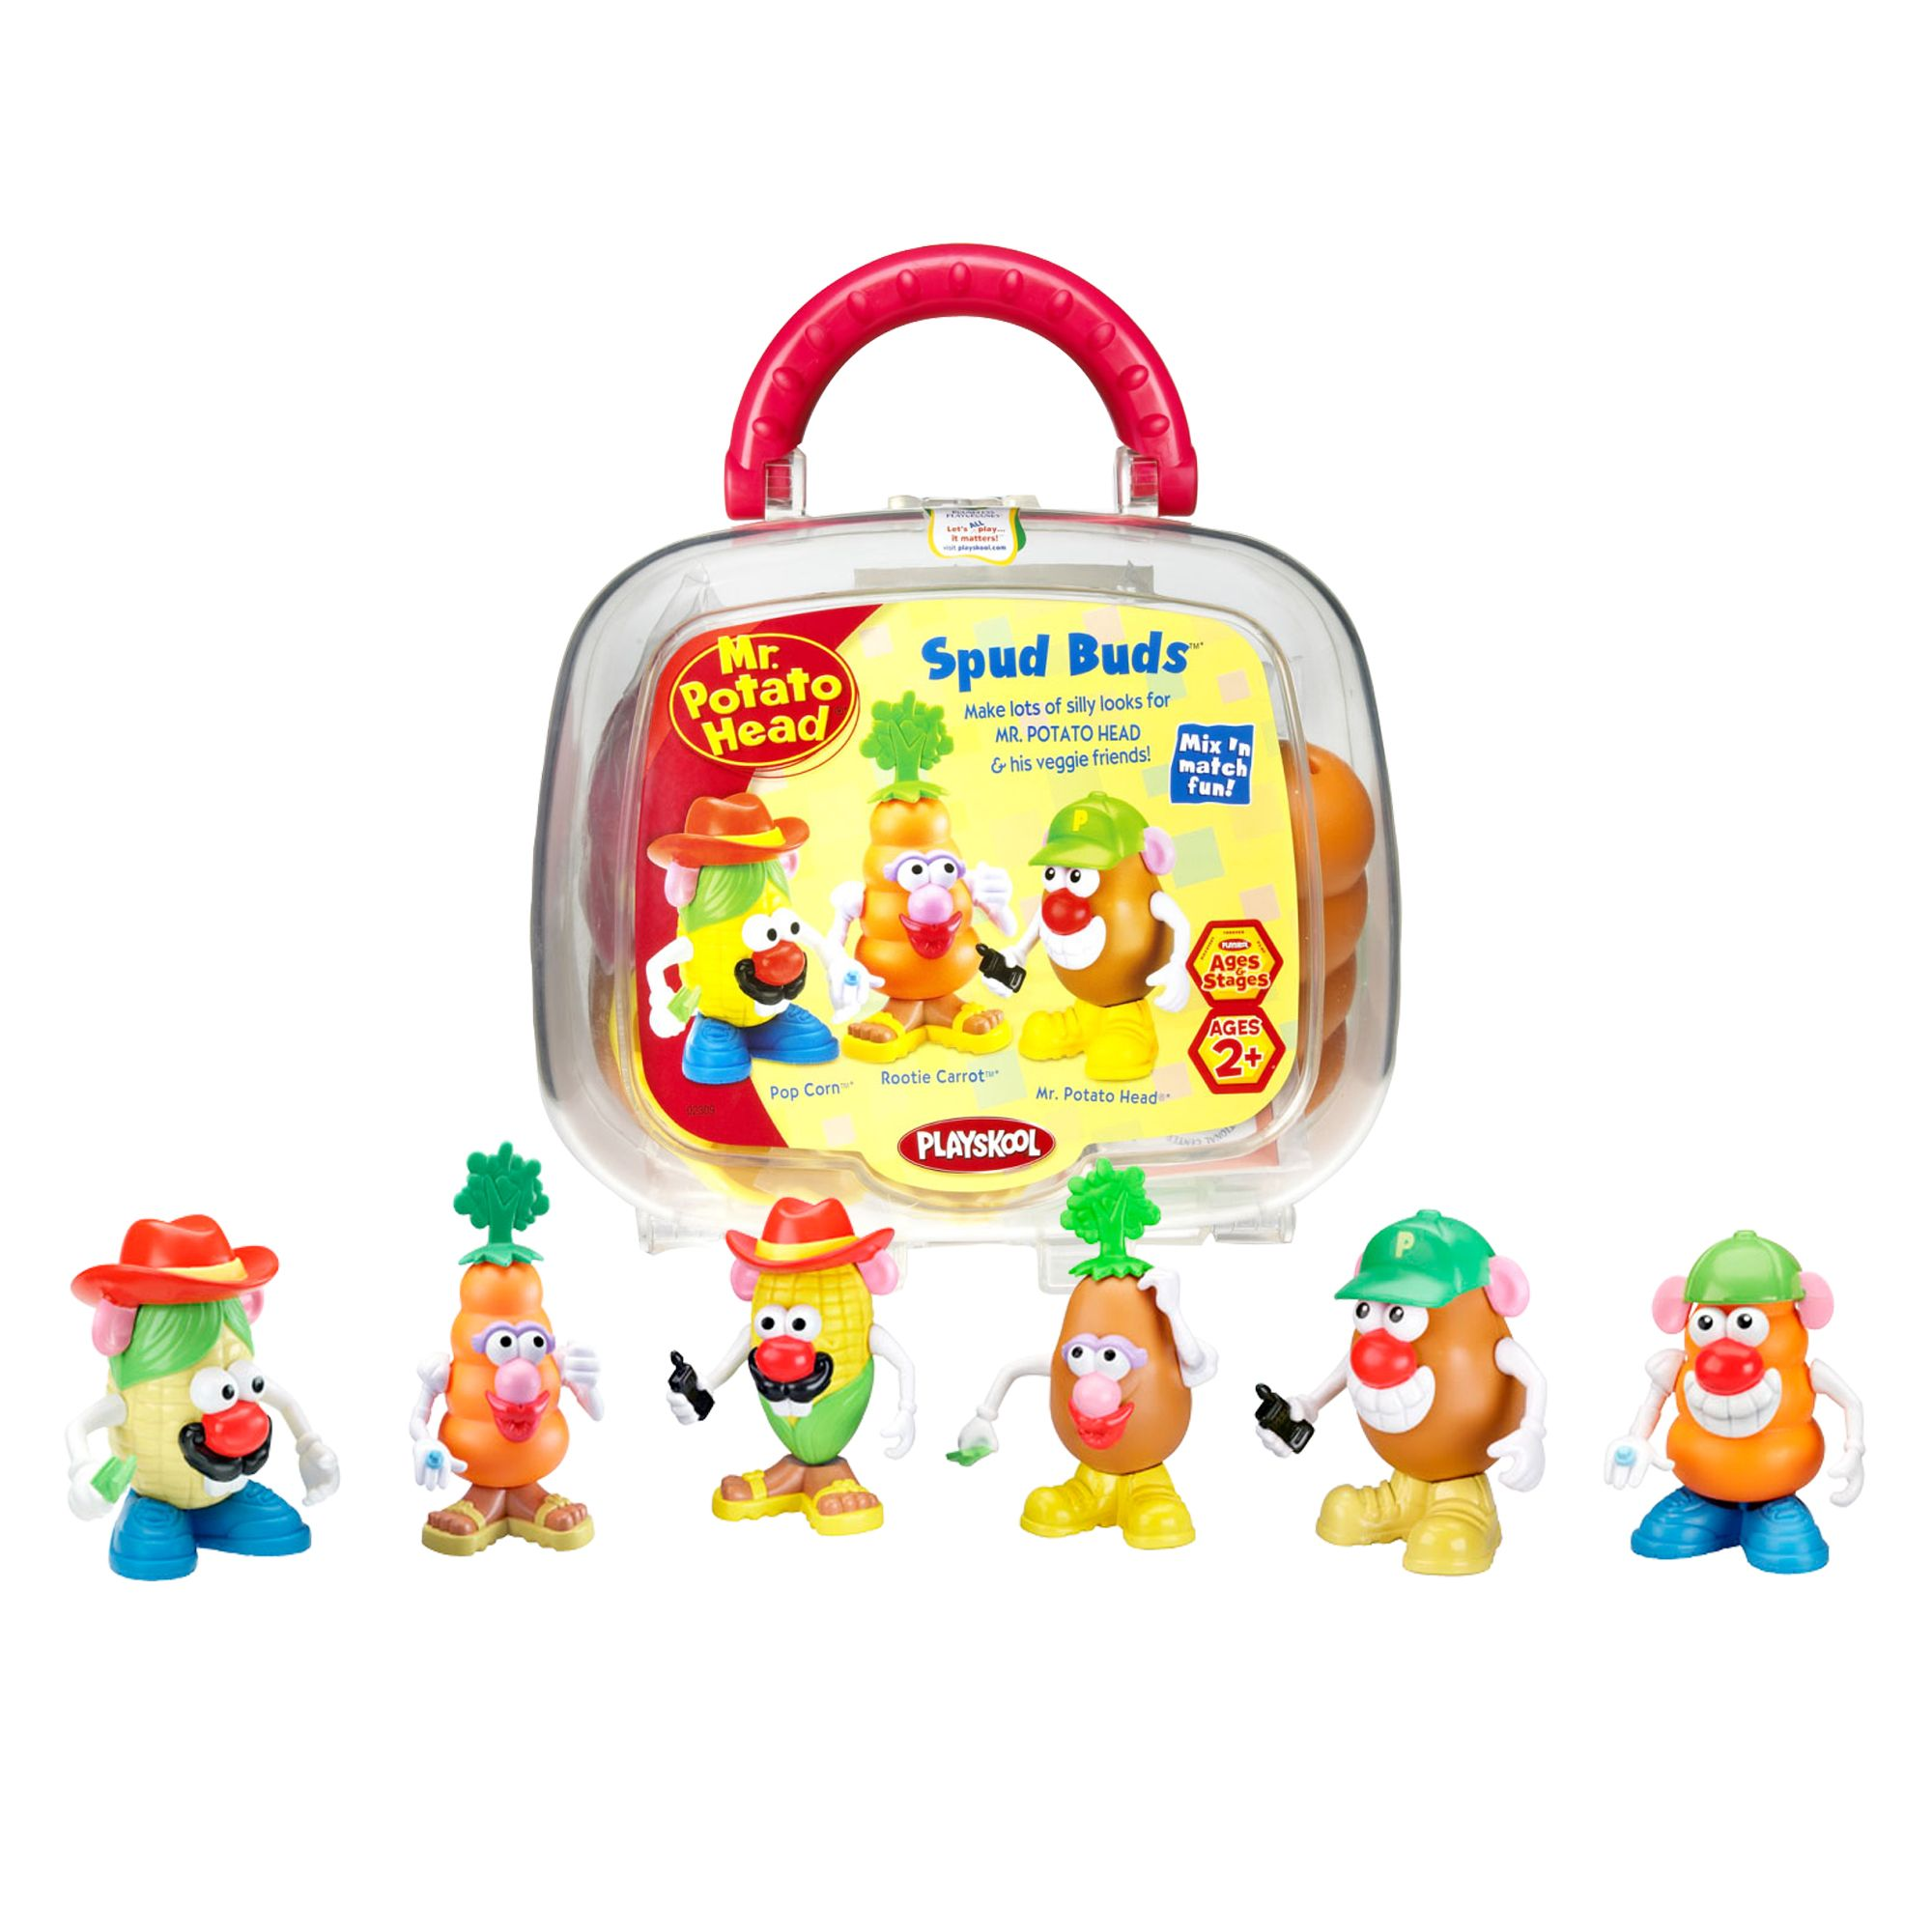 Playskool . Potato Head Spud Buds - Styles